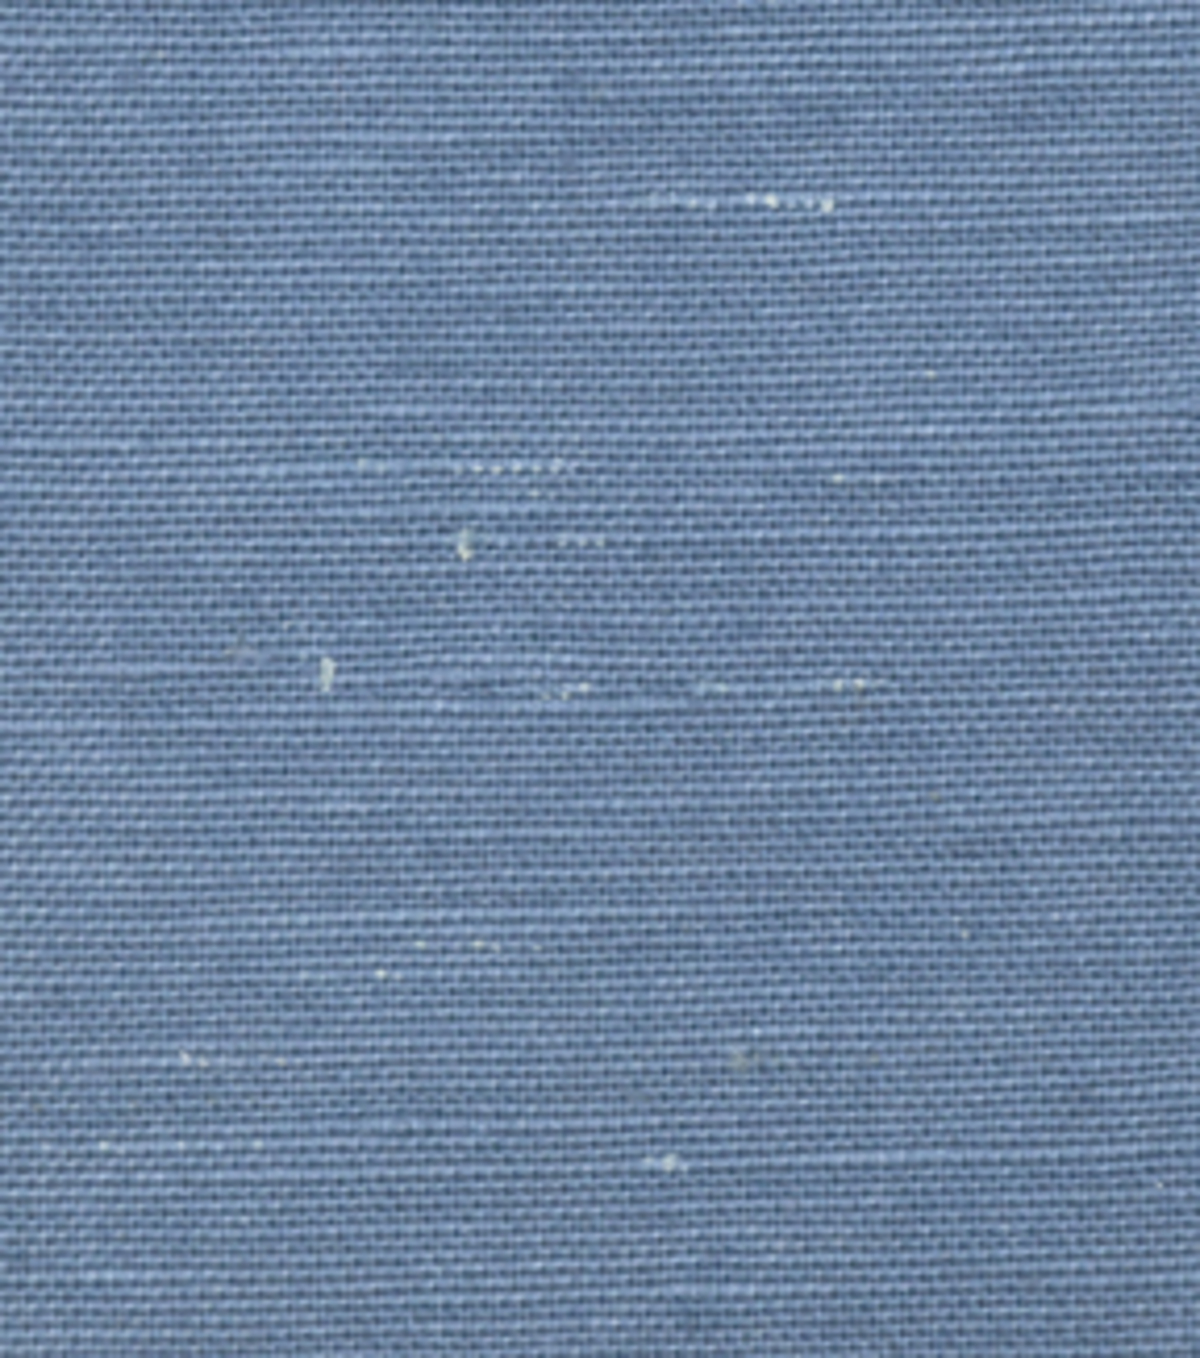 Home Decor 8\u0022x8\u0022 Fabric Swatch-Signature Series Linen-Cotton Chambray